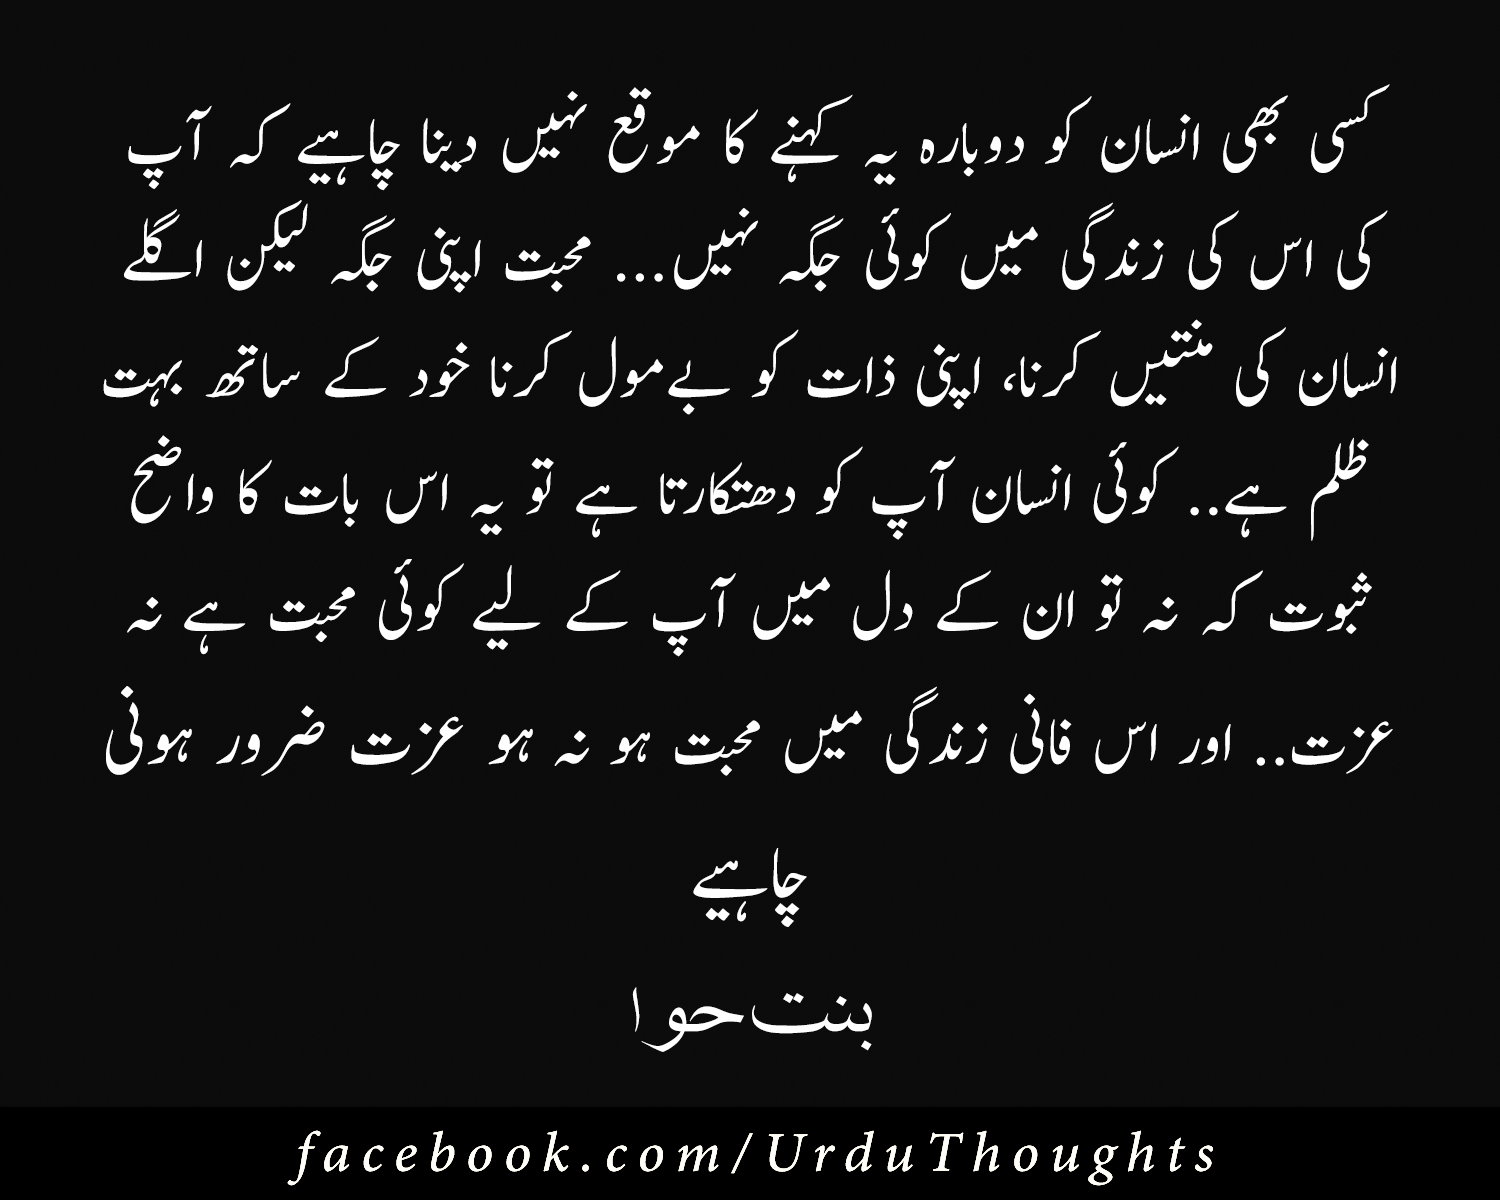 Quotes In Urdu Gorgeous Best Awesome Beautiful Quotes In Urdu With Pictures  Urdu Thoughts